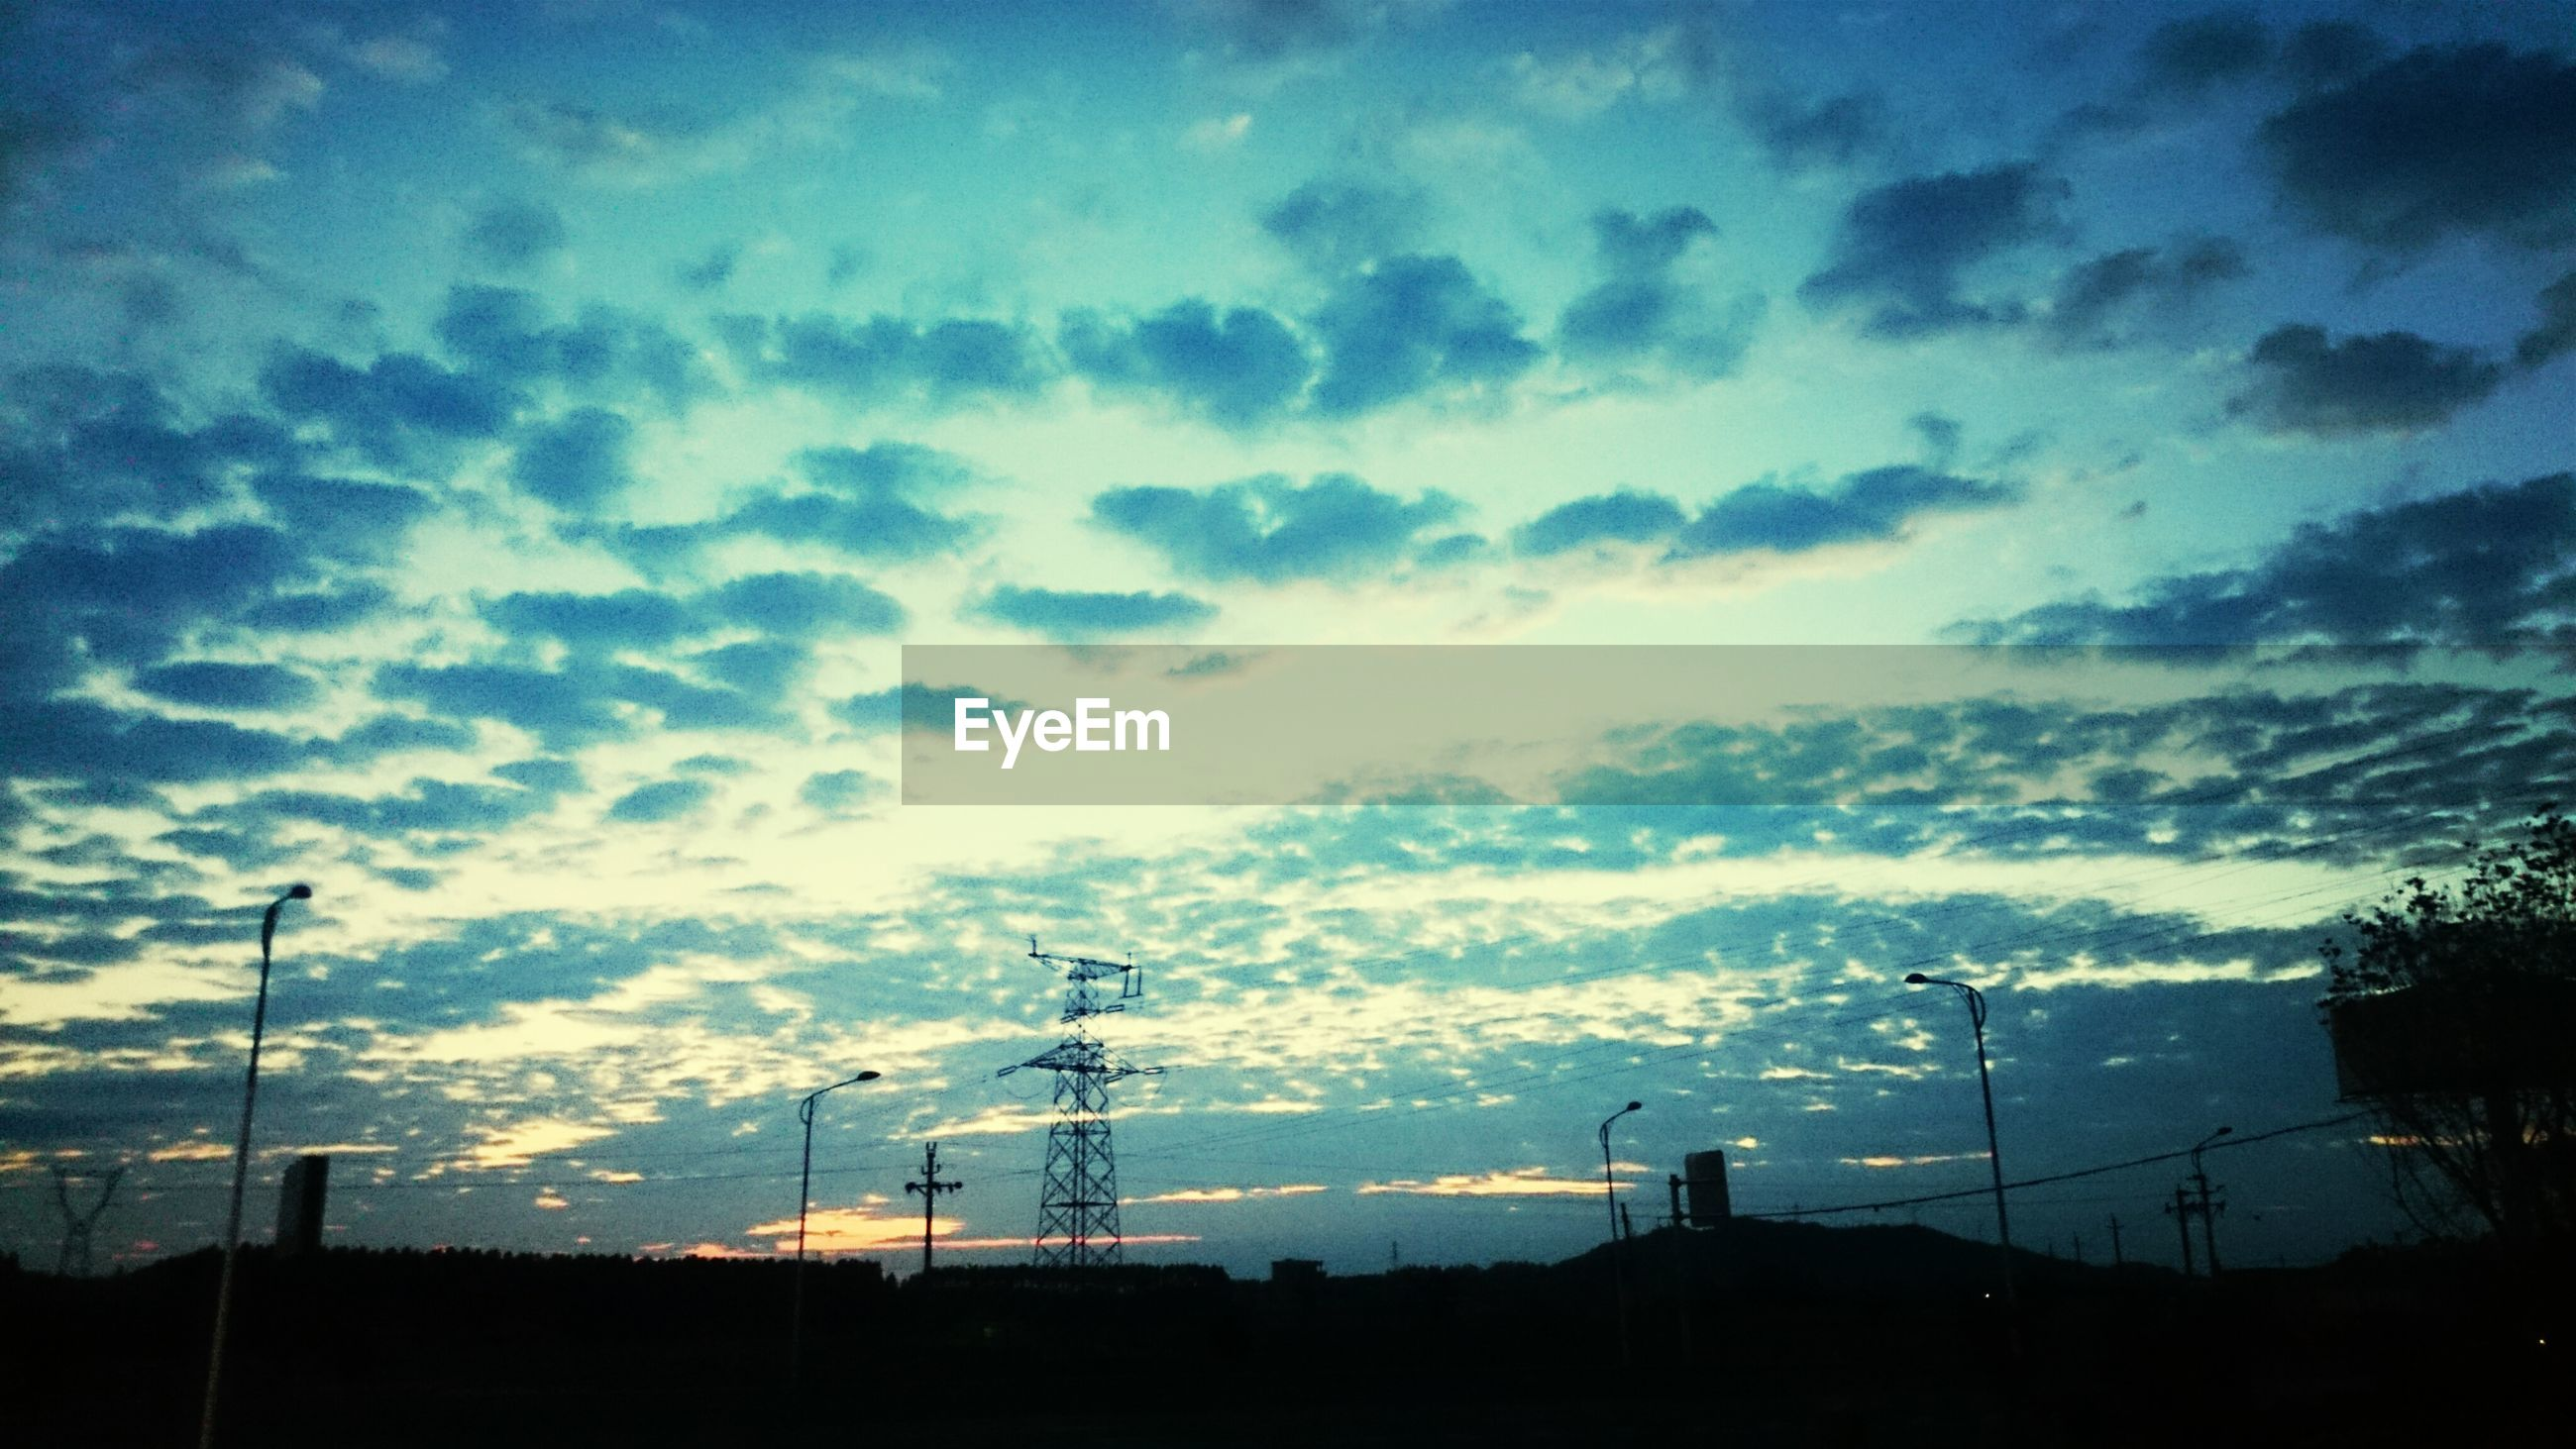 silhouette, sky, electricity pylon, fuel and power generation, sunset, electricity, power line, cloud - sky, power supply, technology, low angle view, beauty in nature, scenics, nature, landscape, tranquility, cloud, dusk, tranquil scene, cloudy